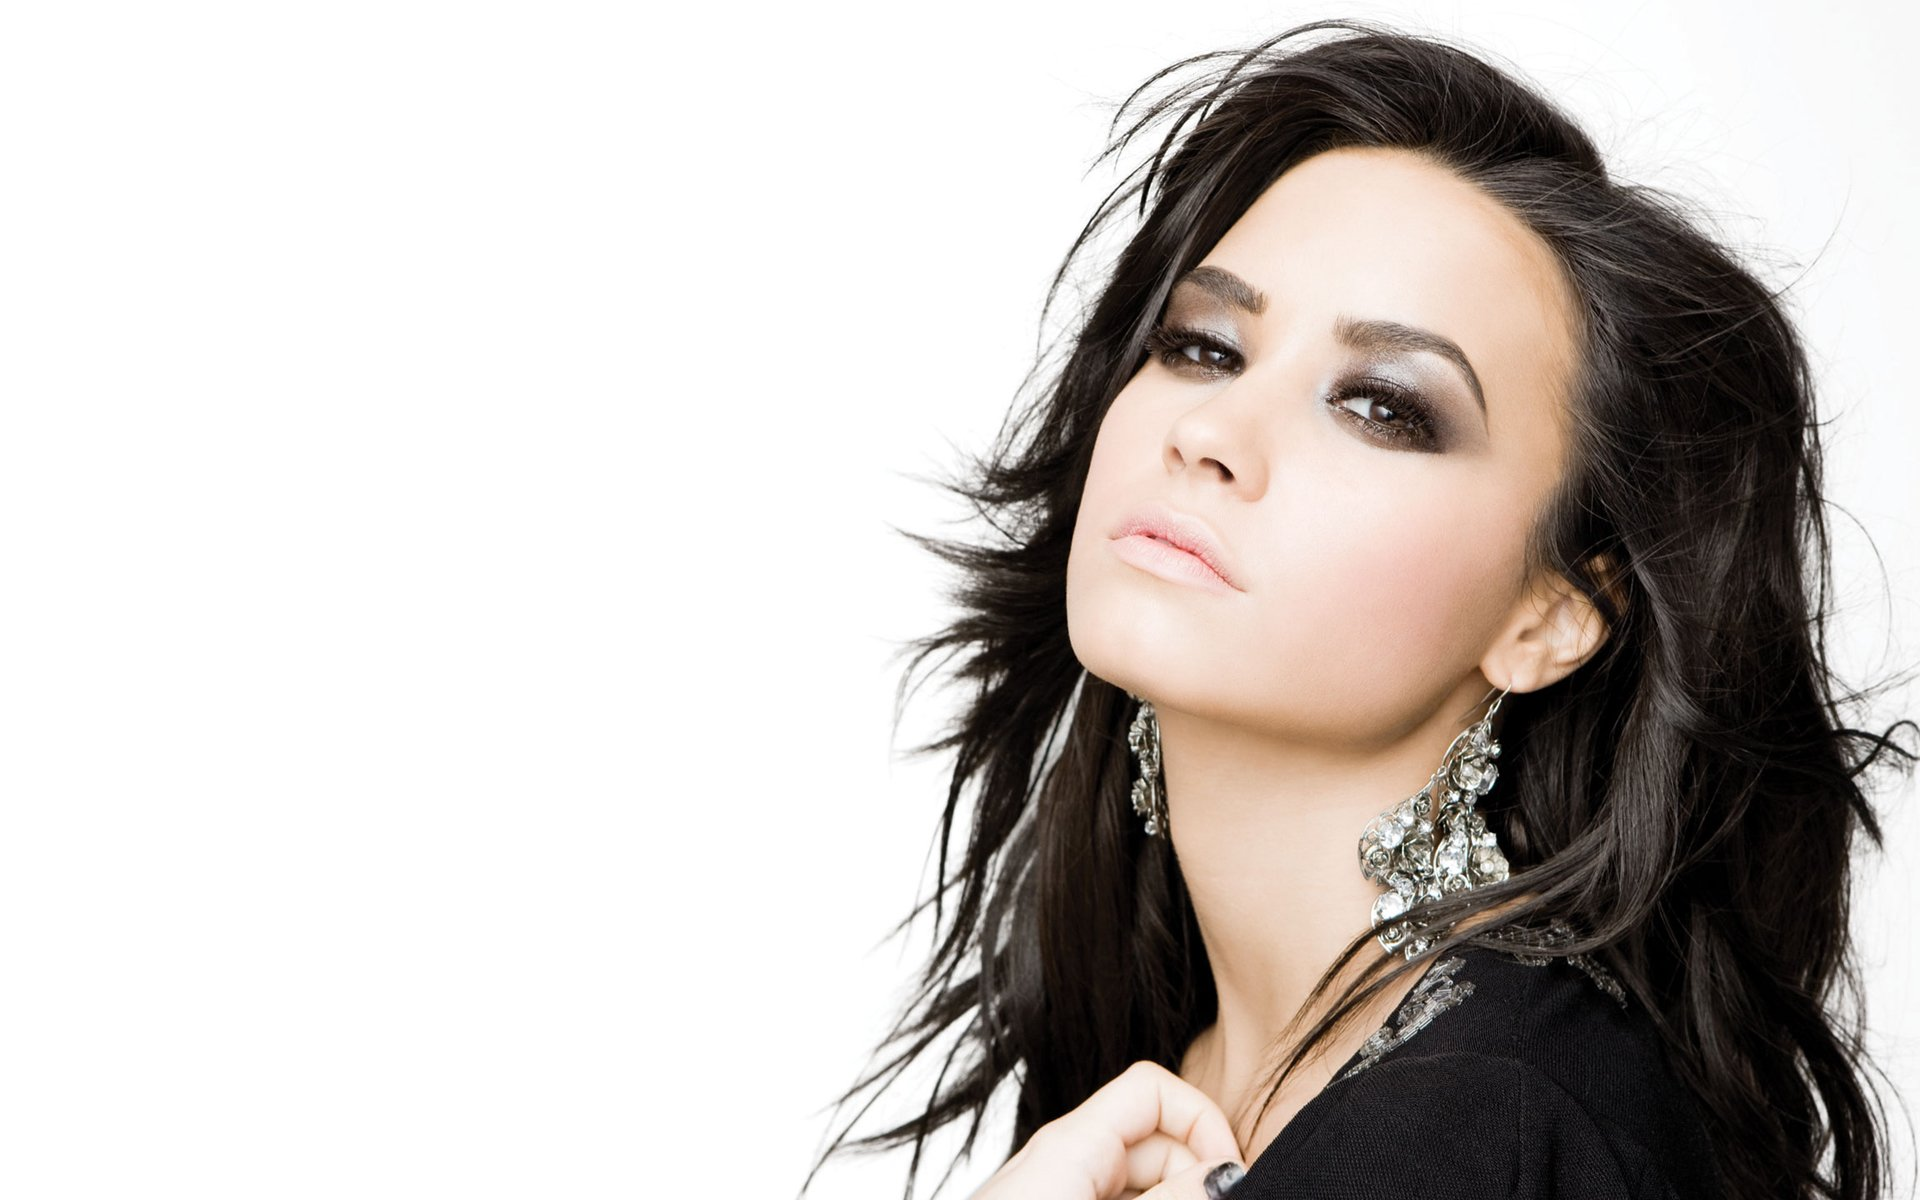 113 demi lovato hd wallpapers | background images - wallpaper abyss